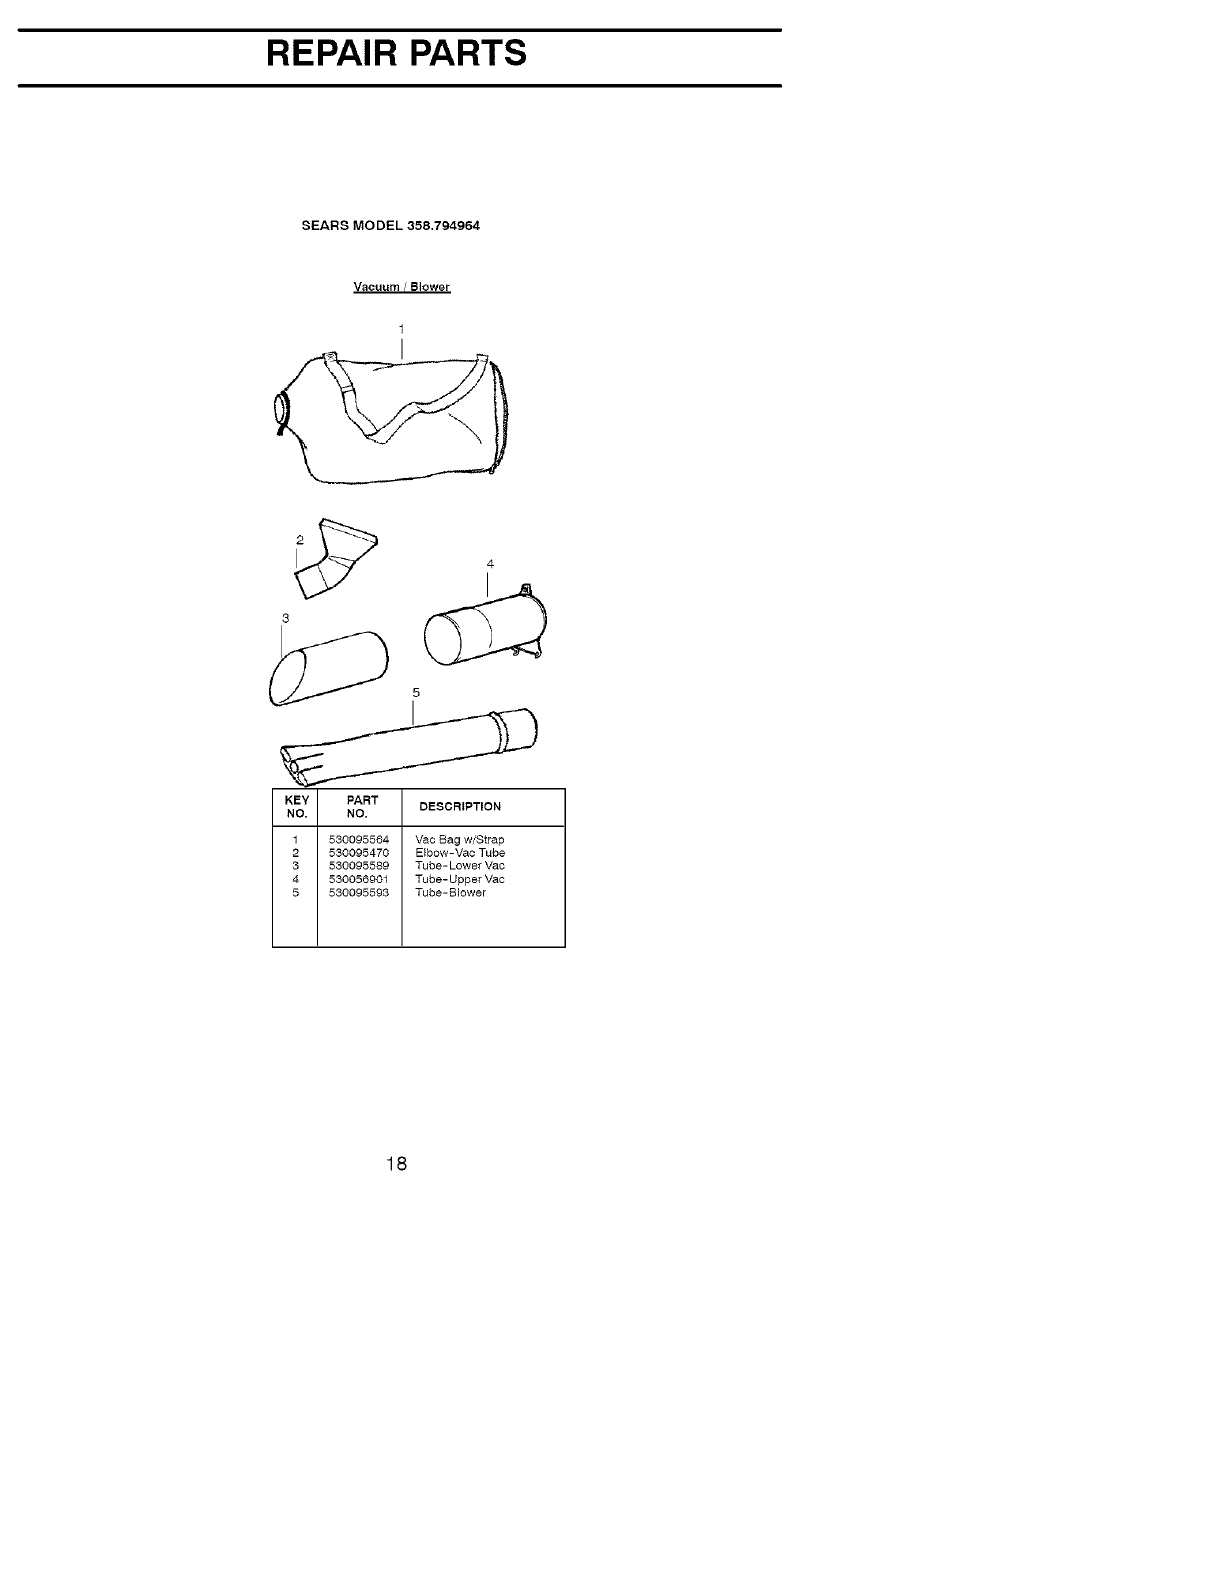 Page 18 of Craftsman Blower 358.794964 User Guide